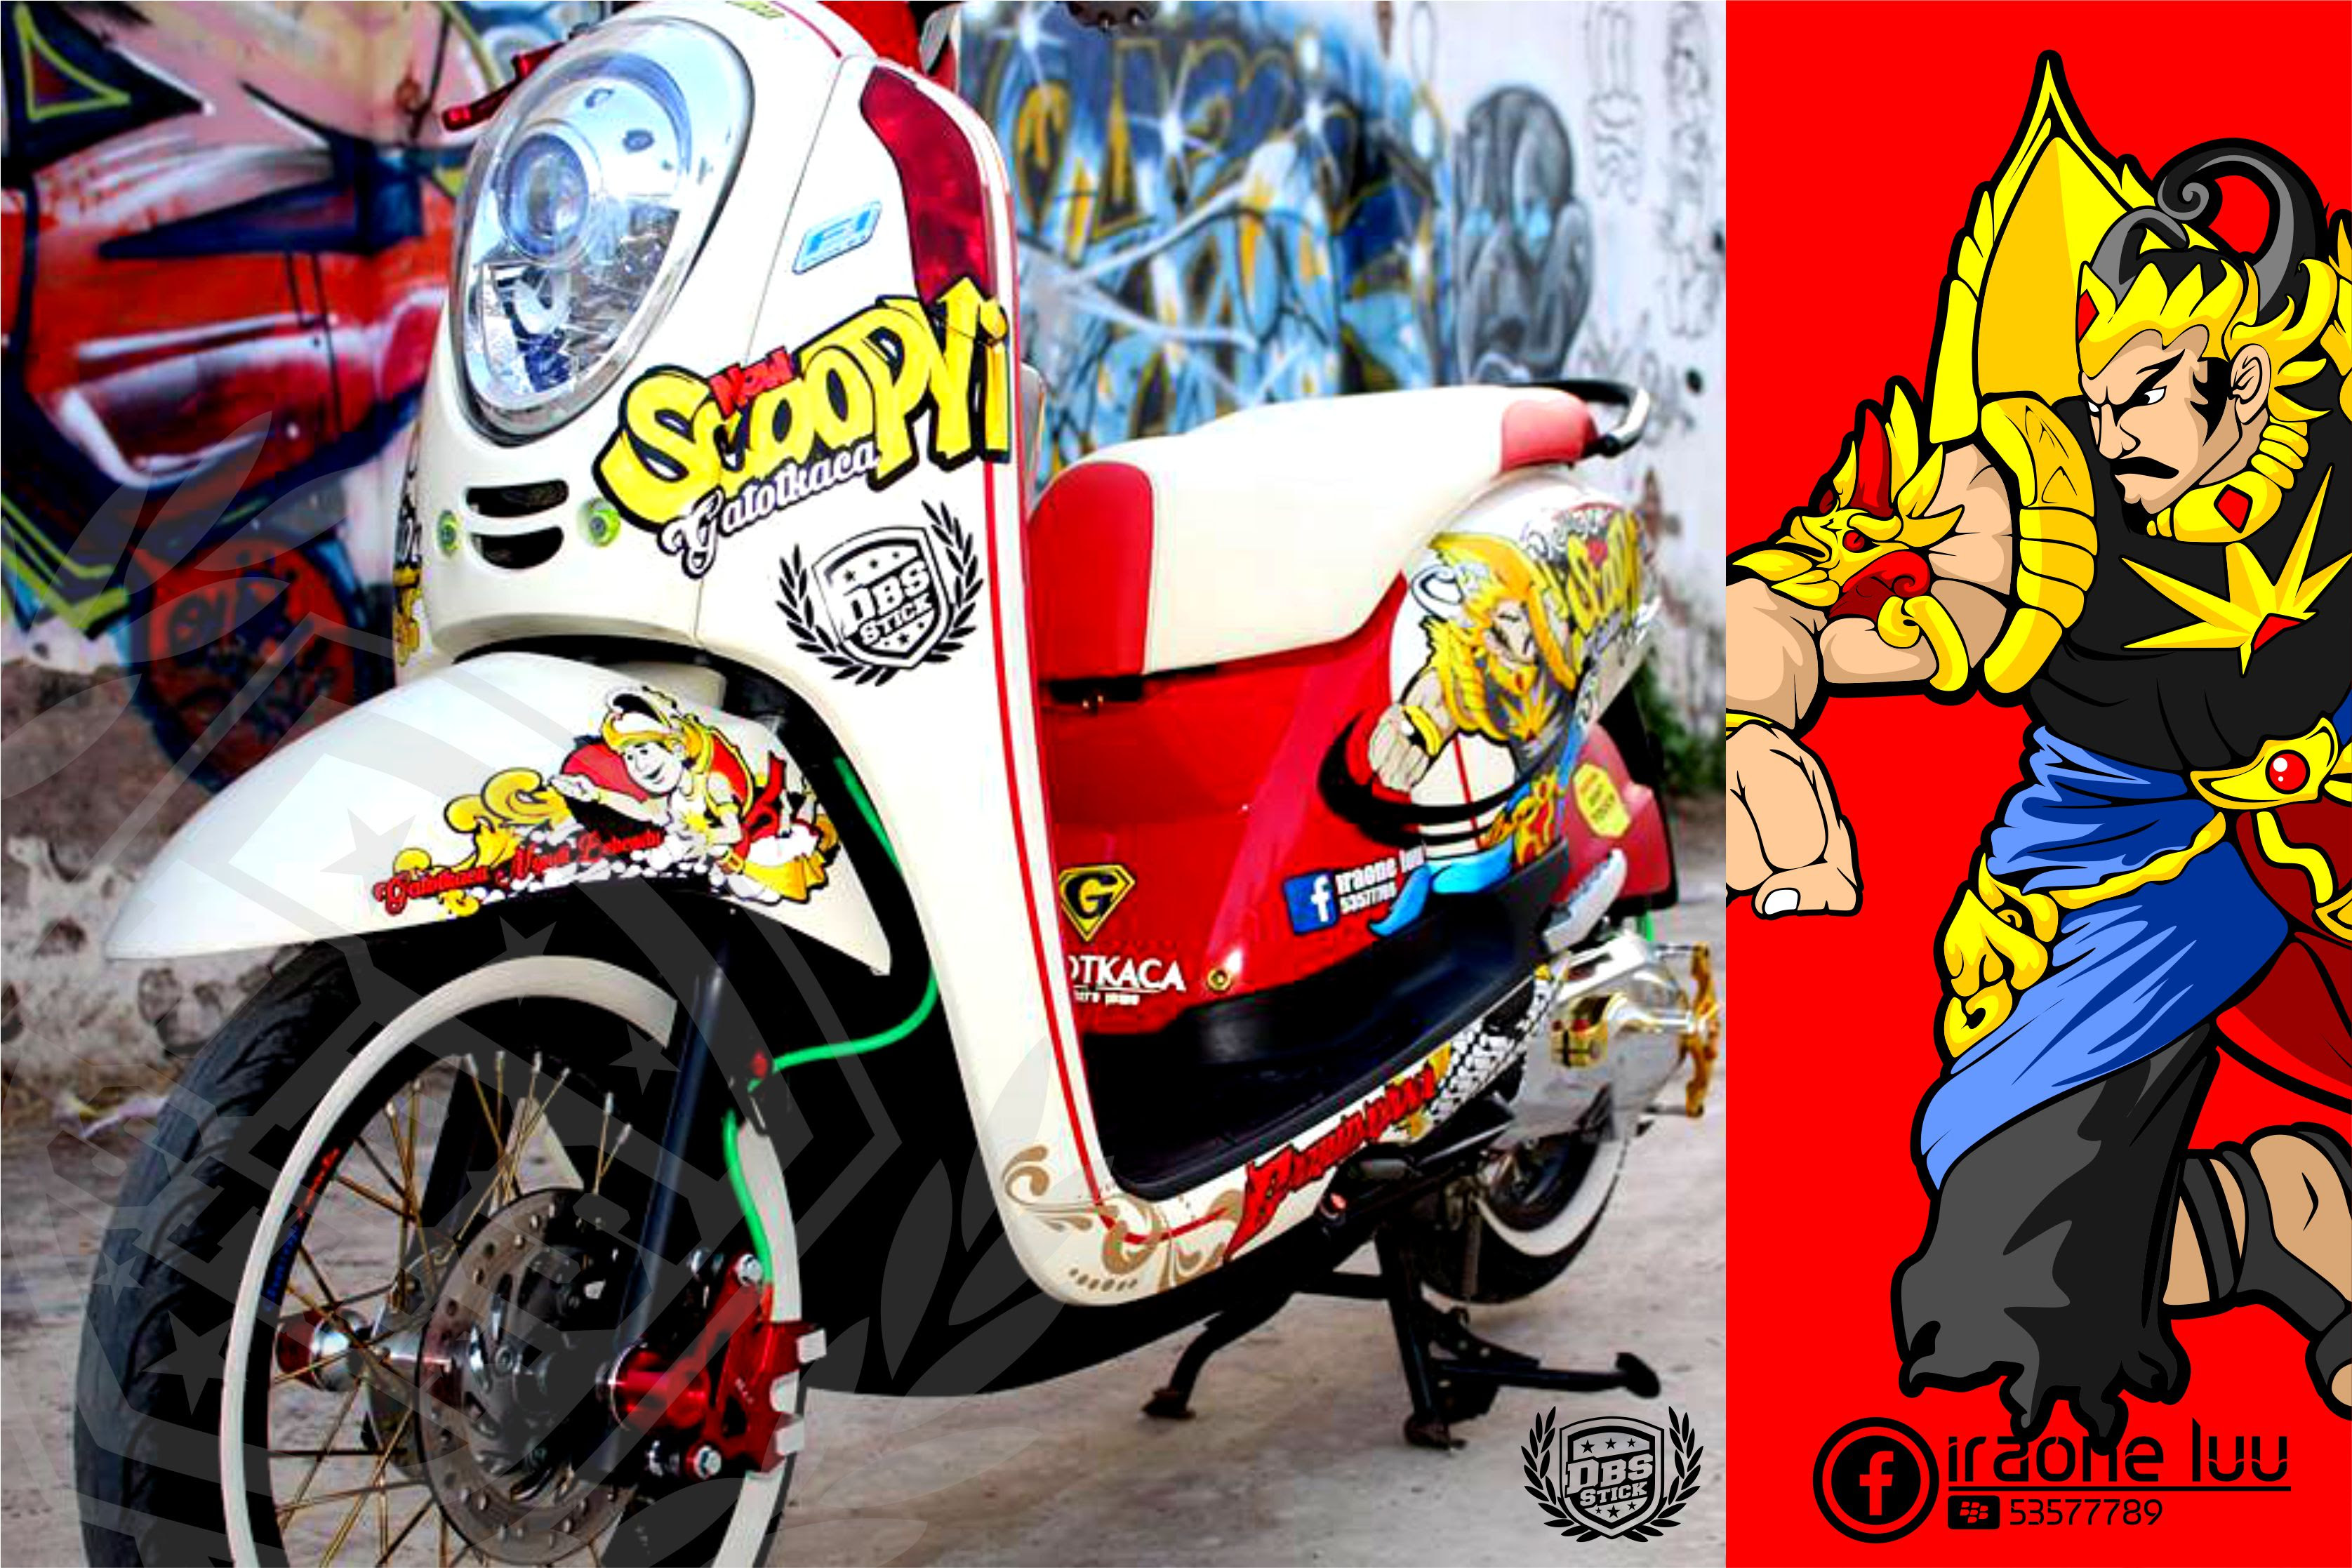 Contoh Gambar Cutting Sticker Motor Scoopy Fi Modif Sticker